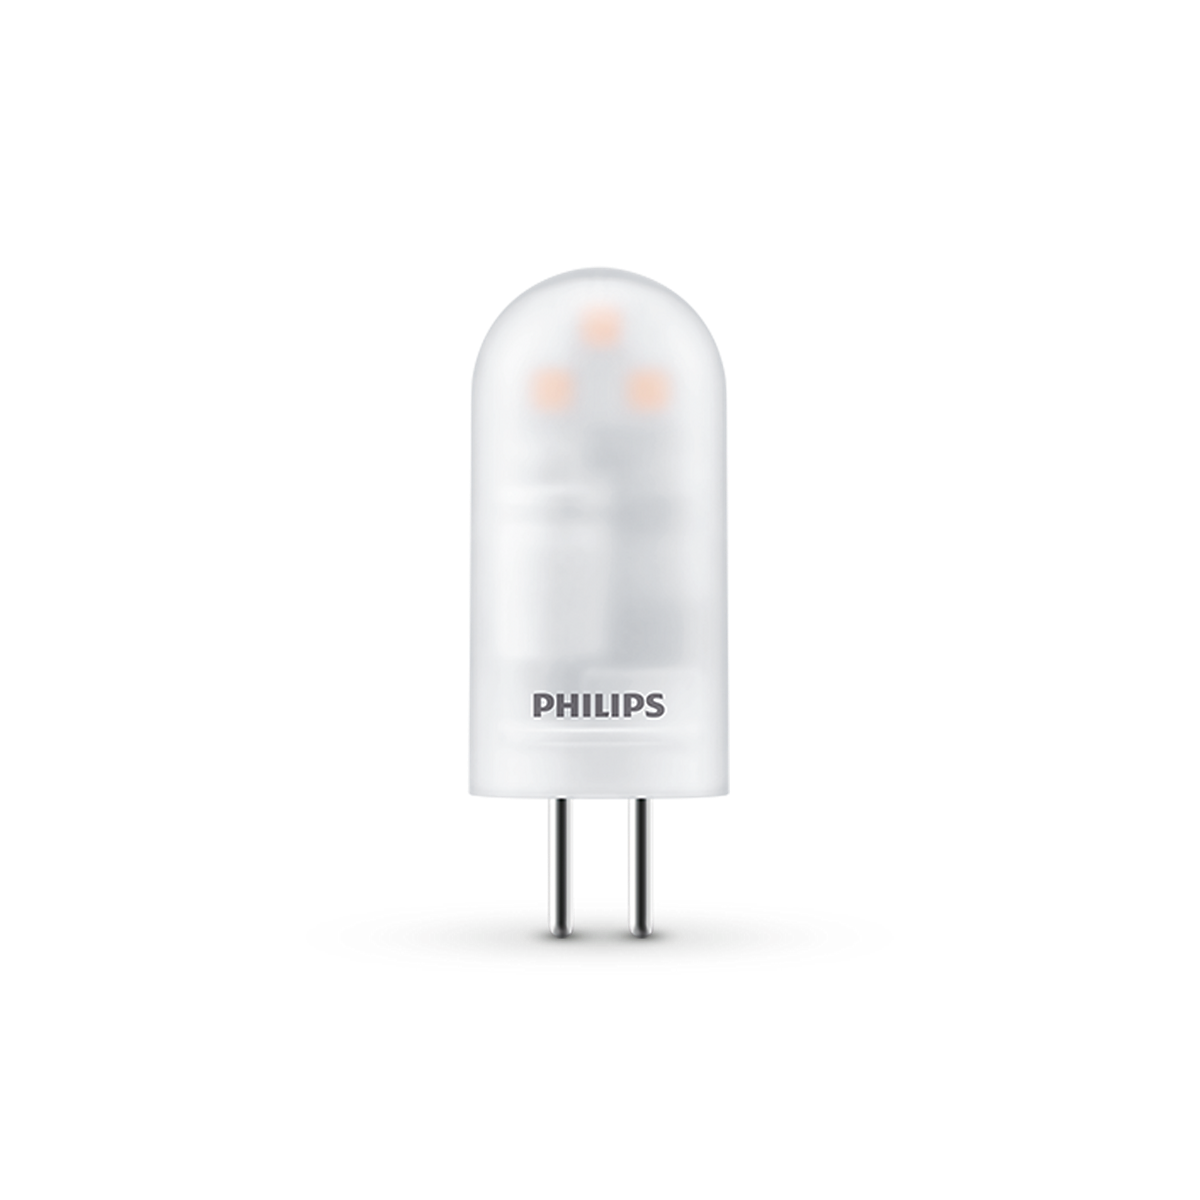 CorePro LEDcapsule LV LED capsules and specials - Philips